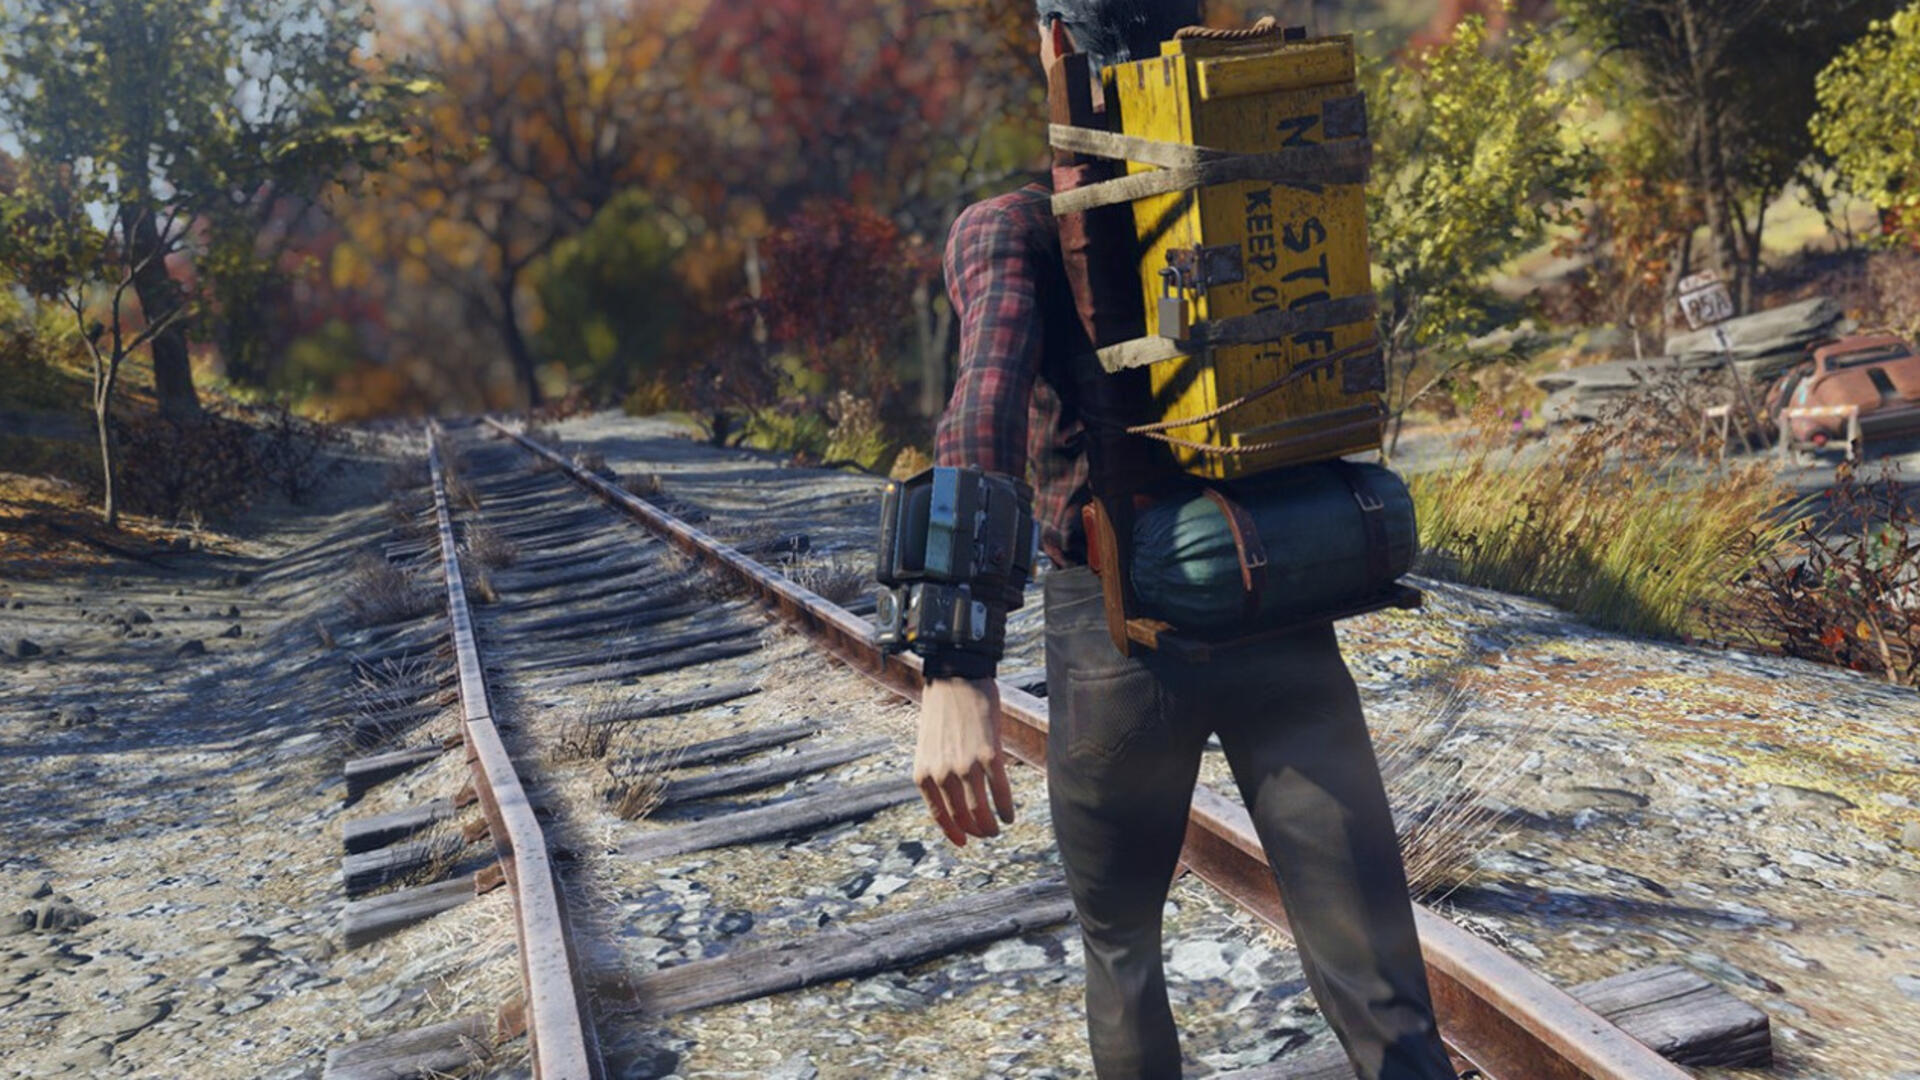 Fallout 76 2019 Roadmap Includes New Main Quest, Game Modes, and